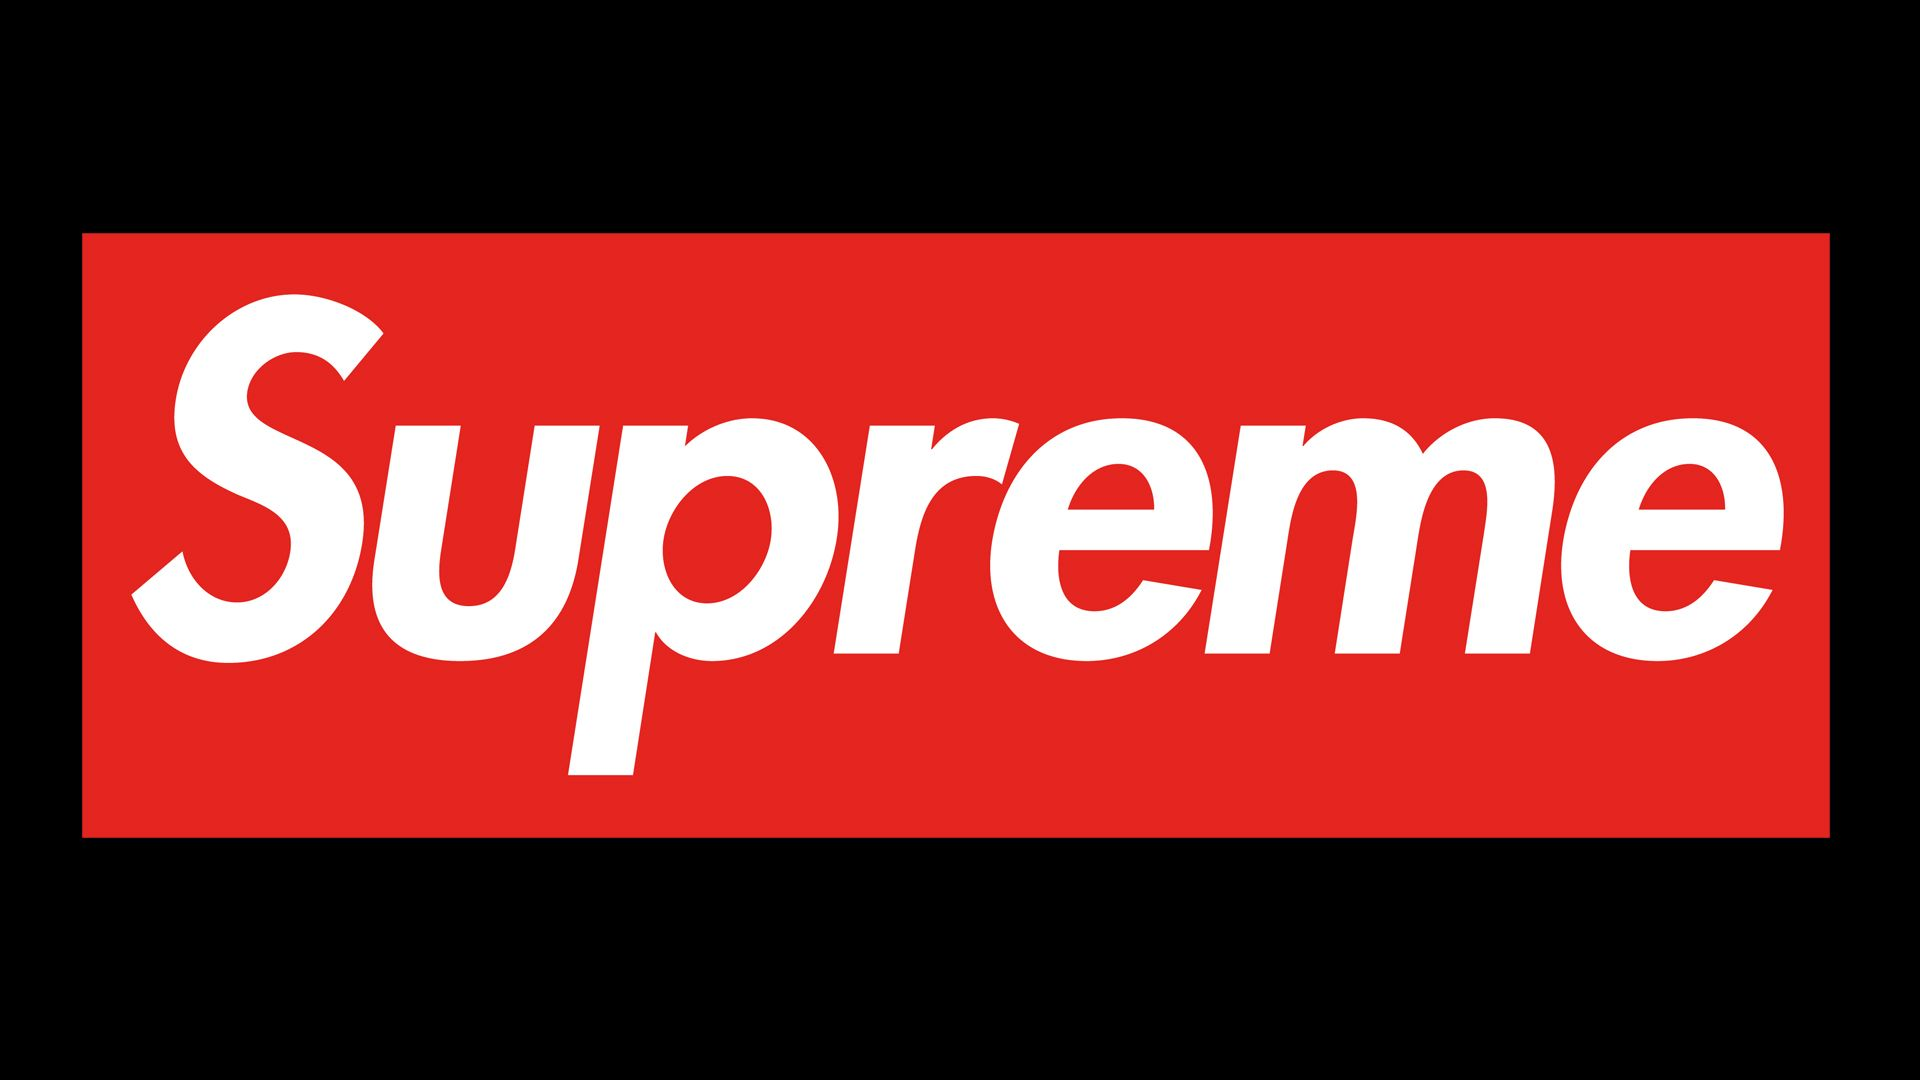 Supreme Logo - Supreme Logo, Supreme Symbol, Meaning, History and Evolution